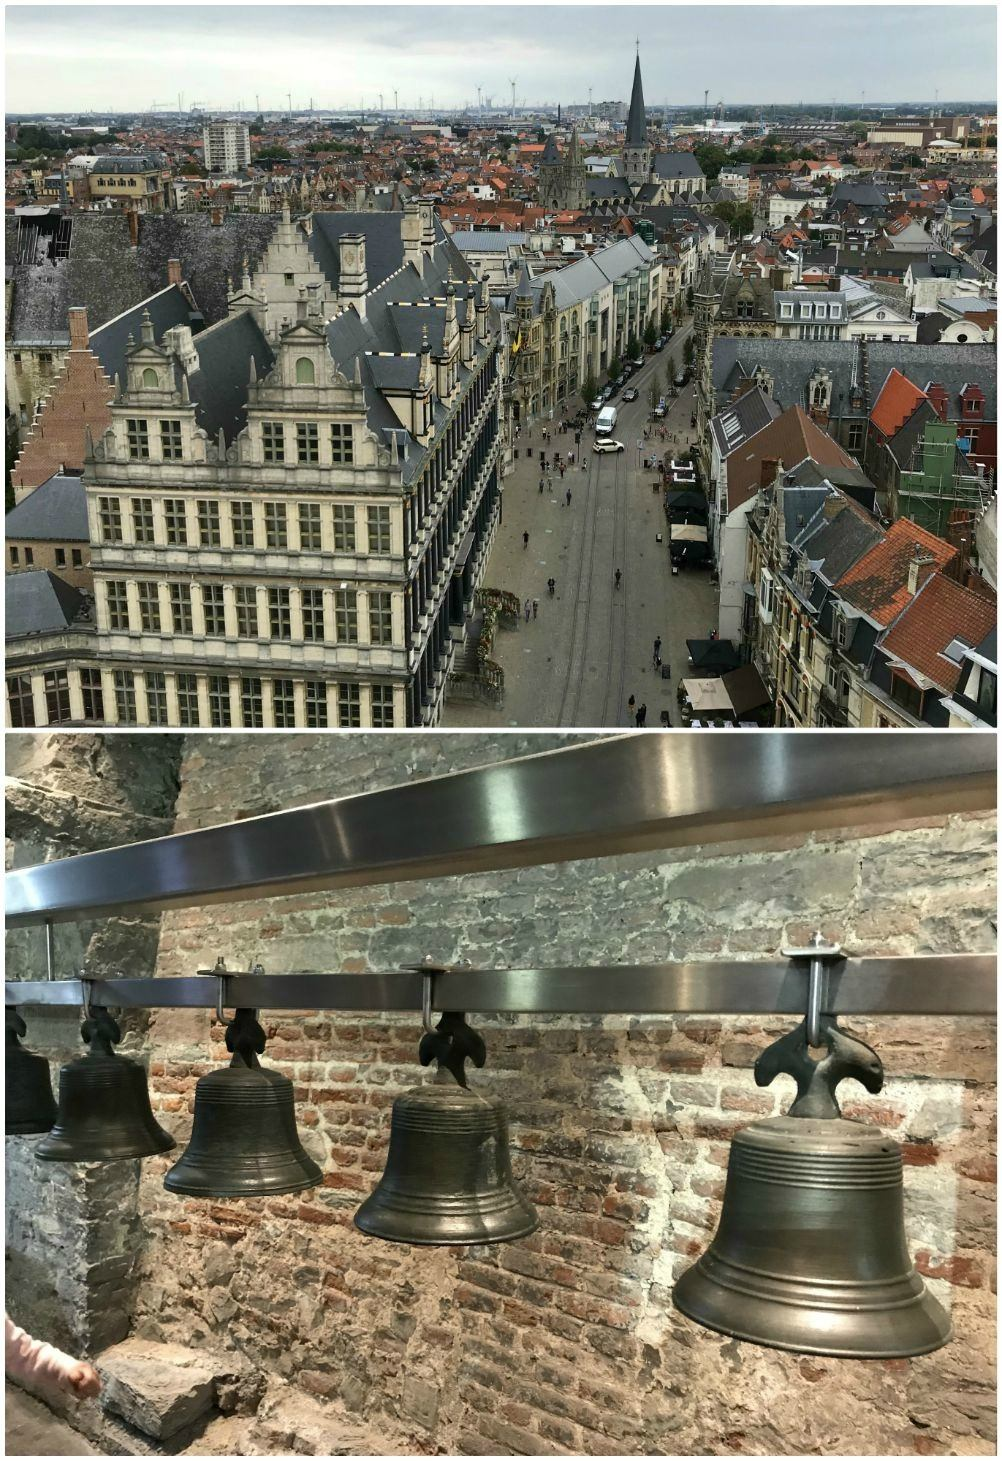 View from the bell tower in Ghent